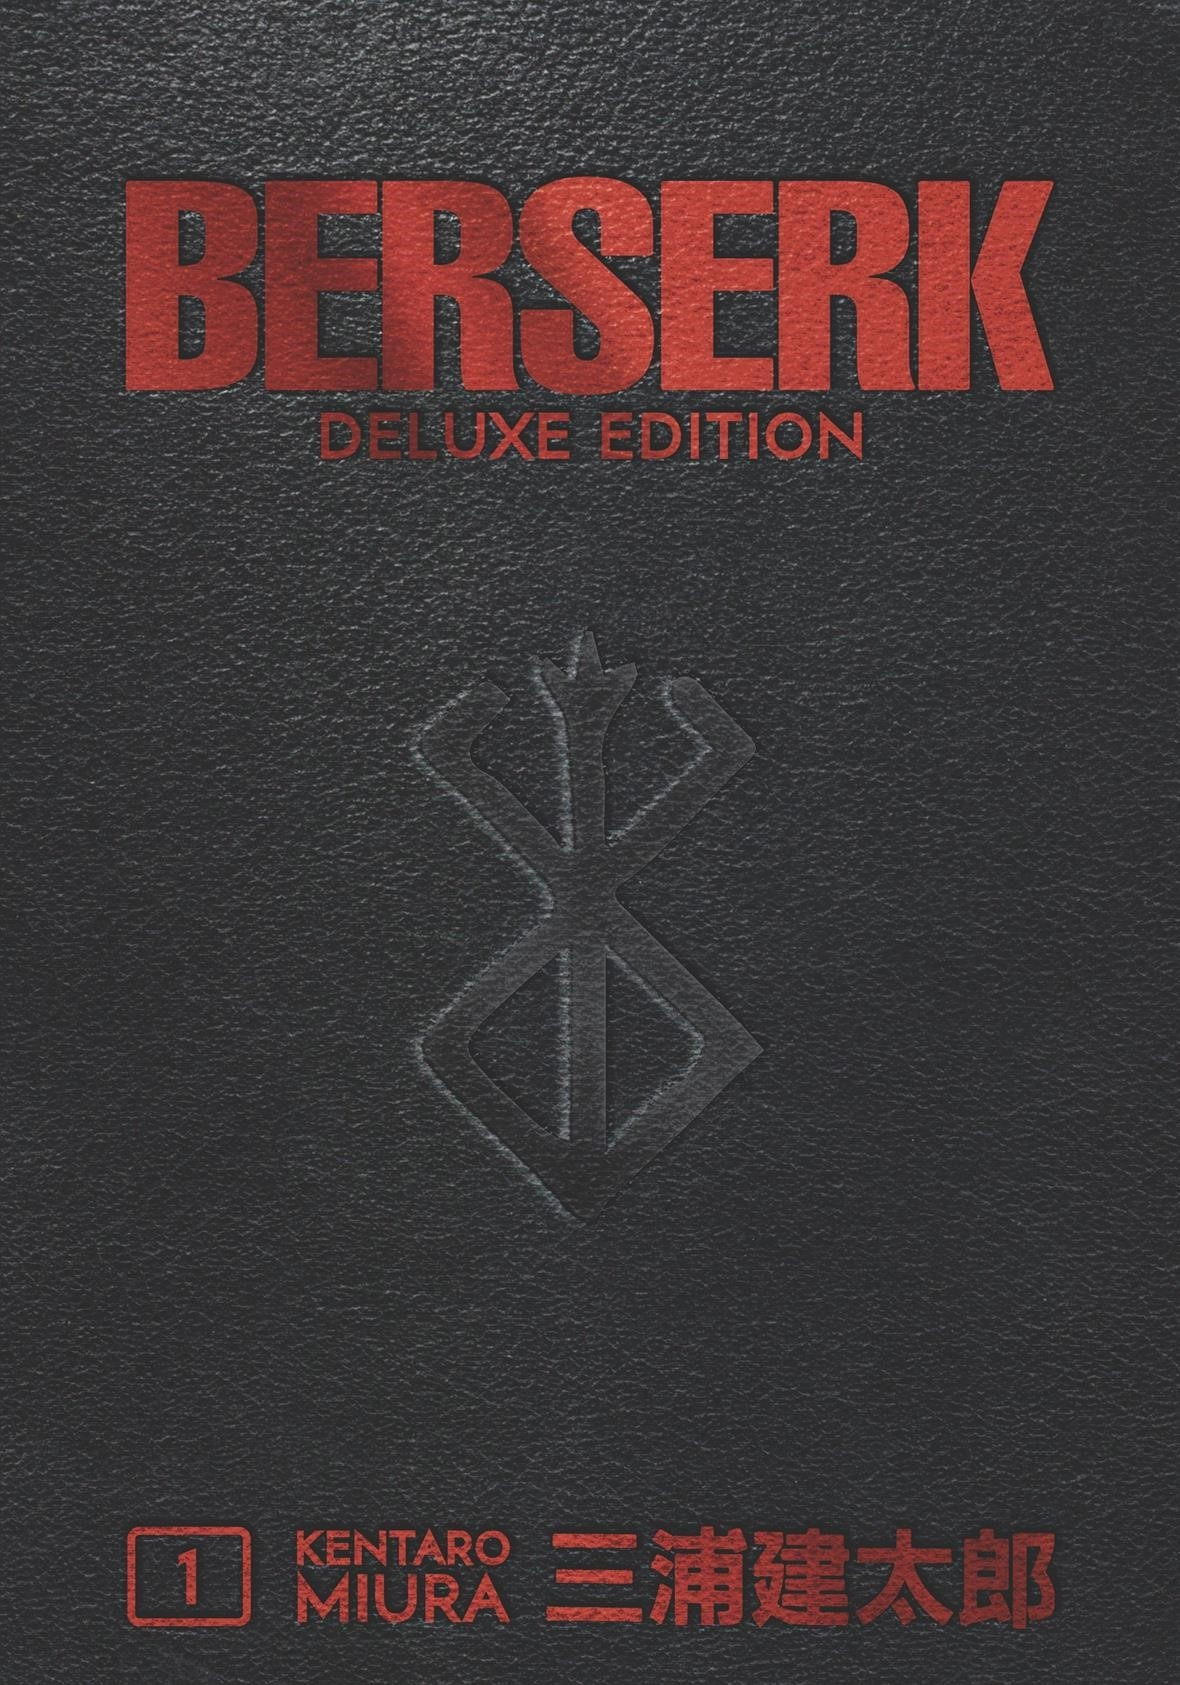 BERSERK DELUXE EDITION HC VOL 01 (O/A) (MR)